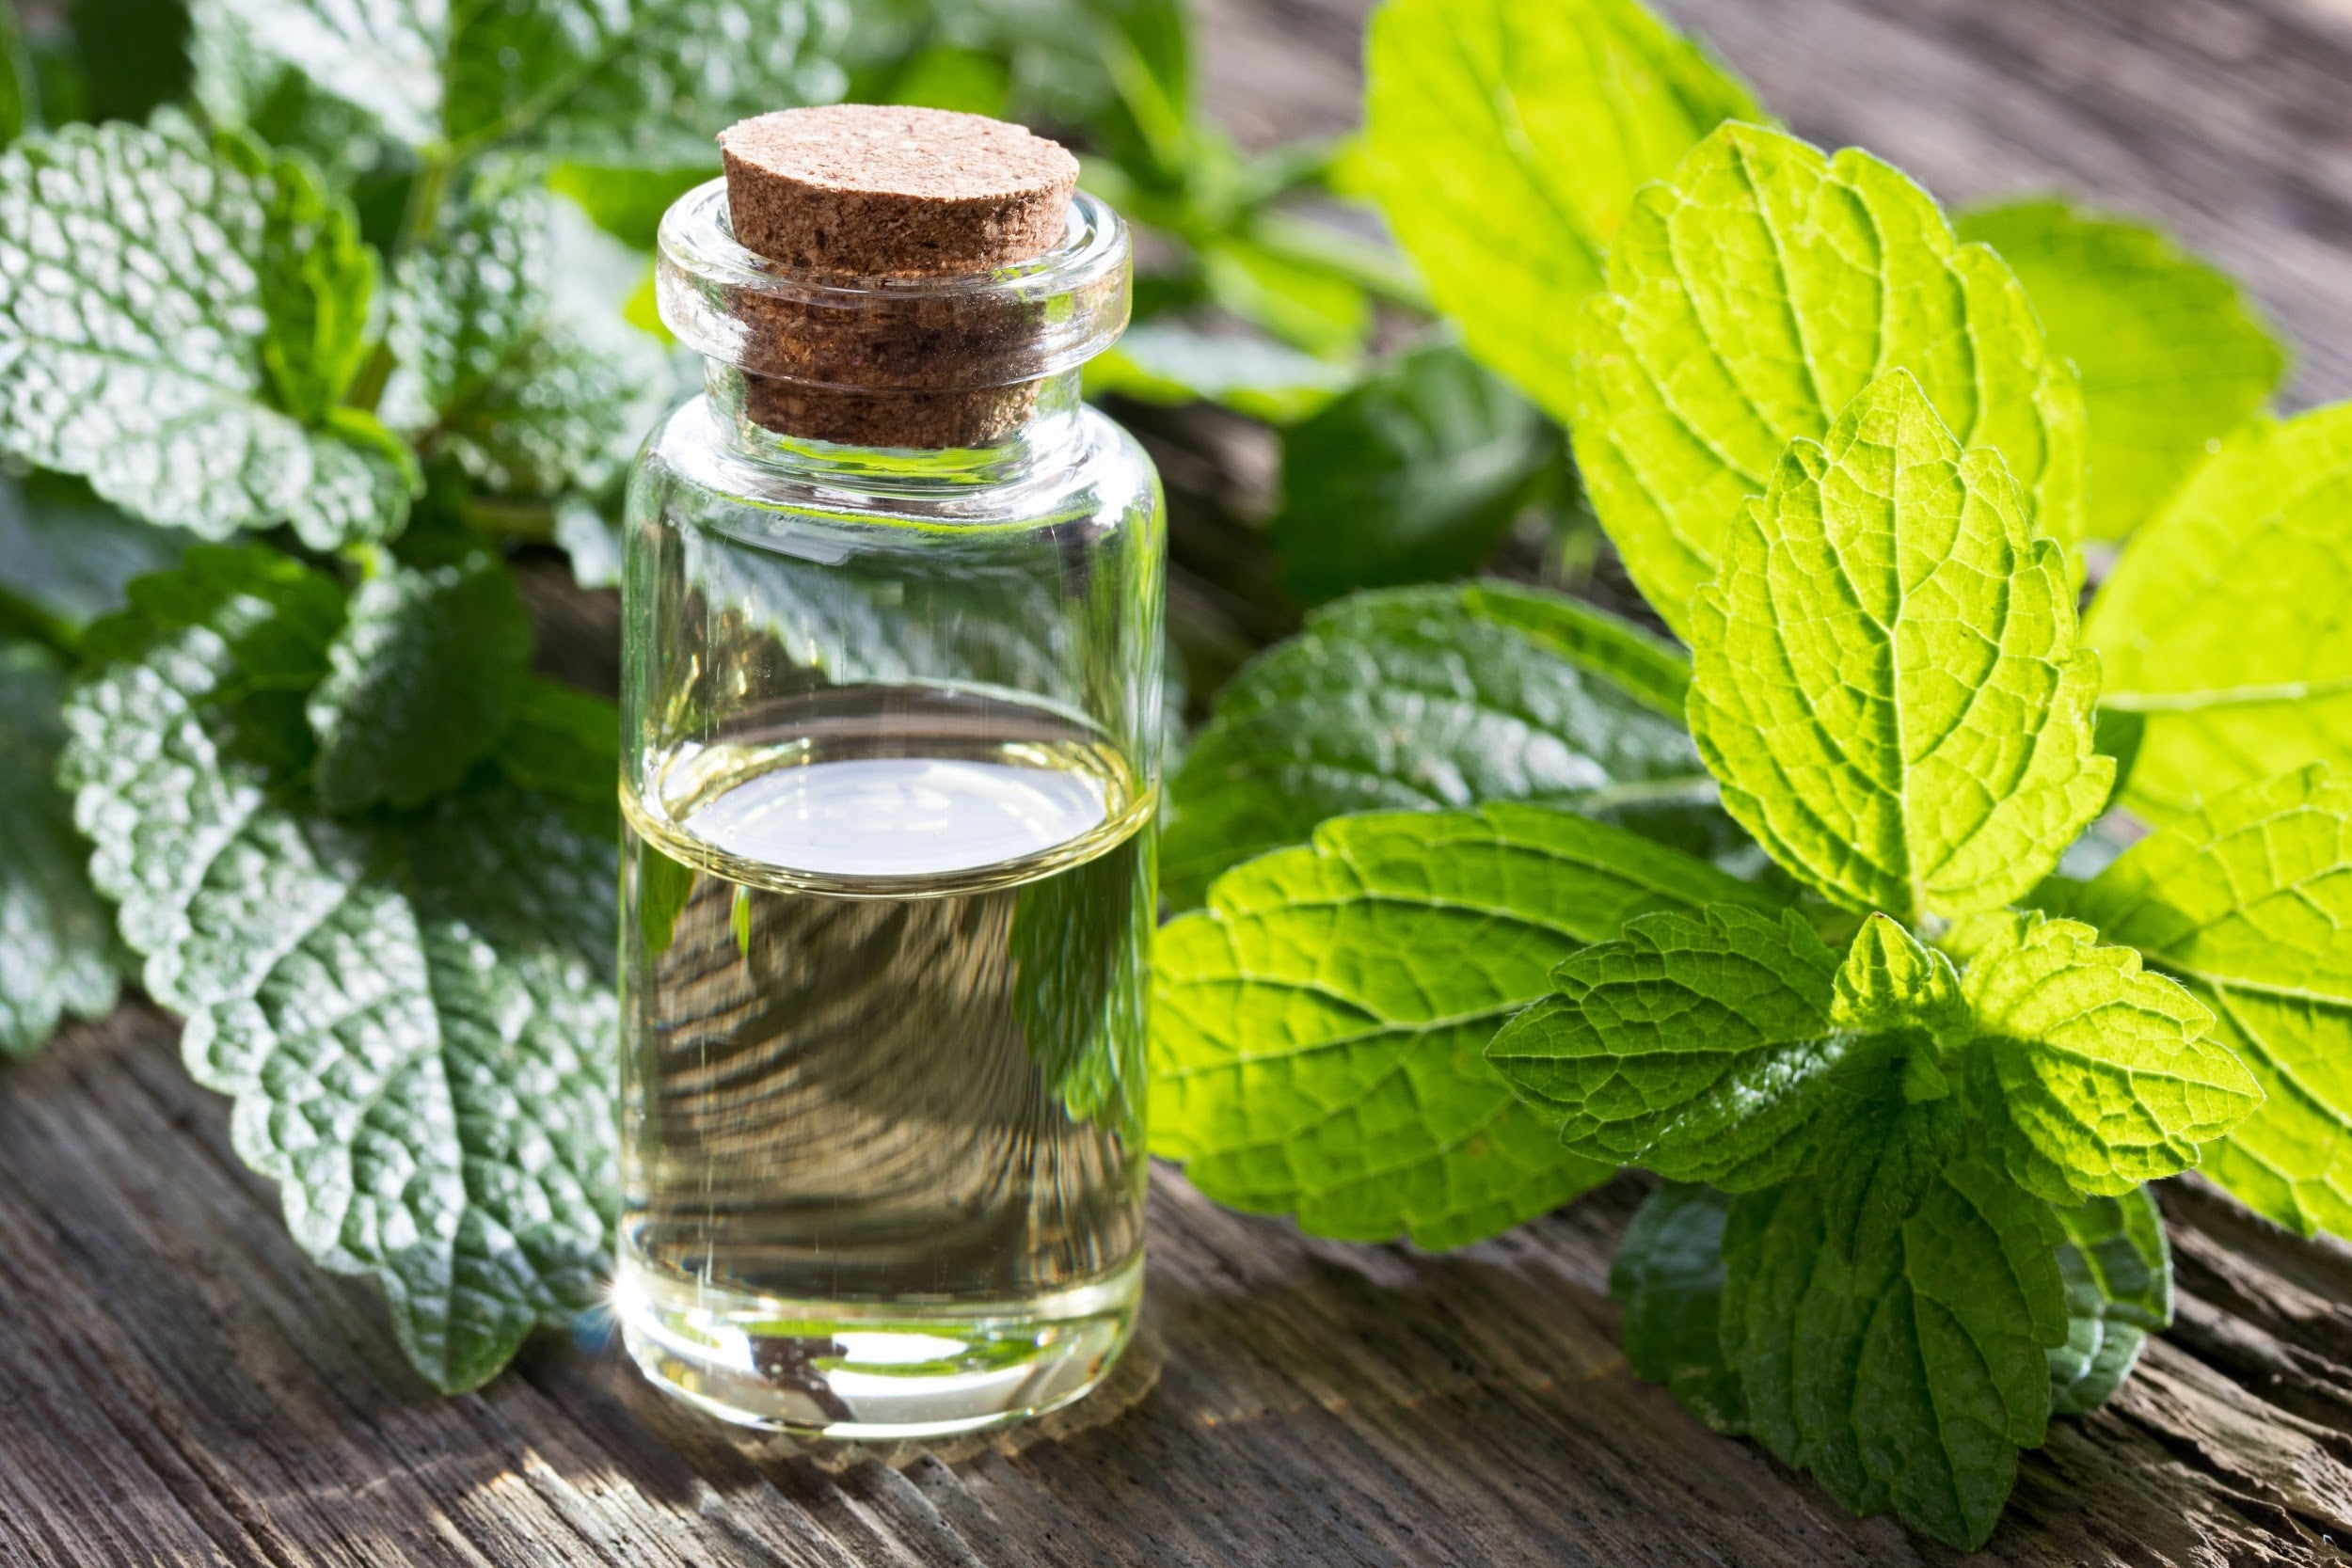 Lemon Balm to relieve stress